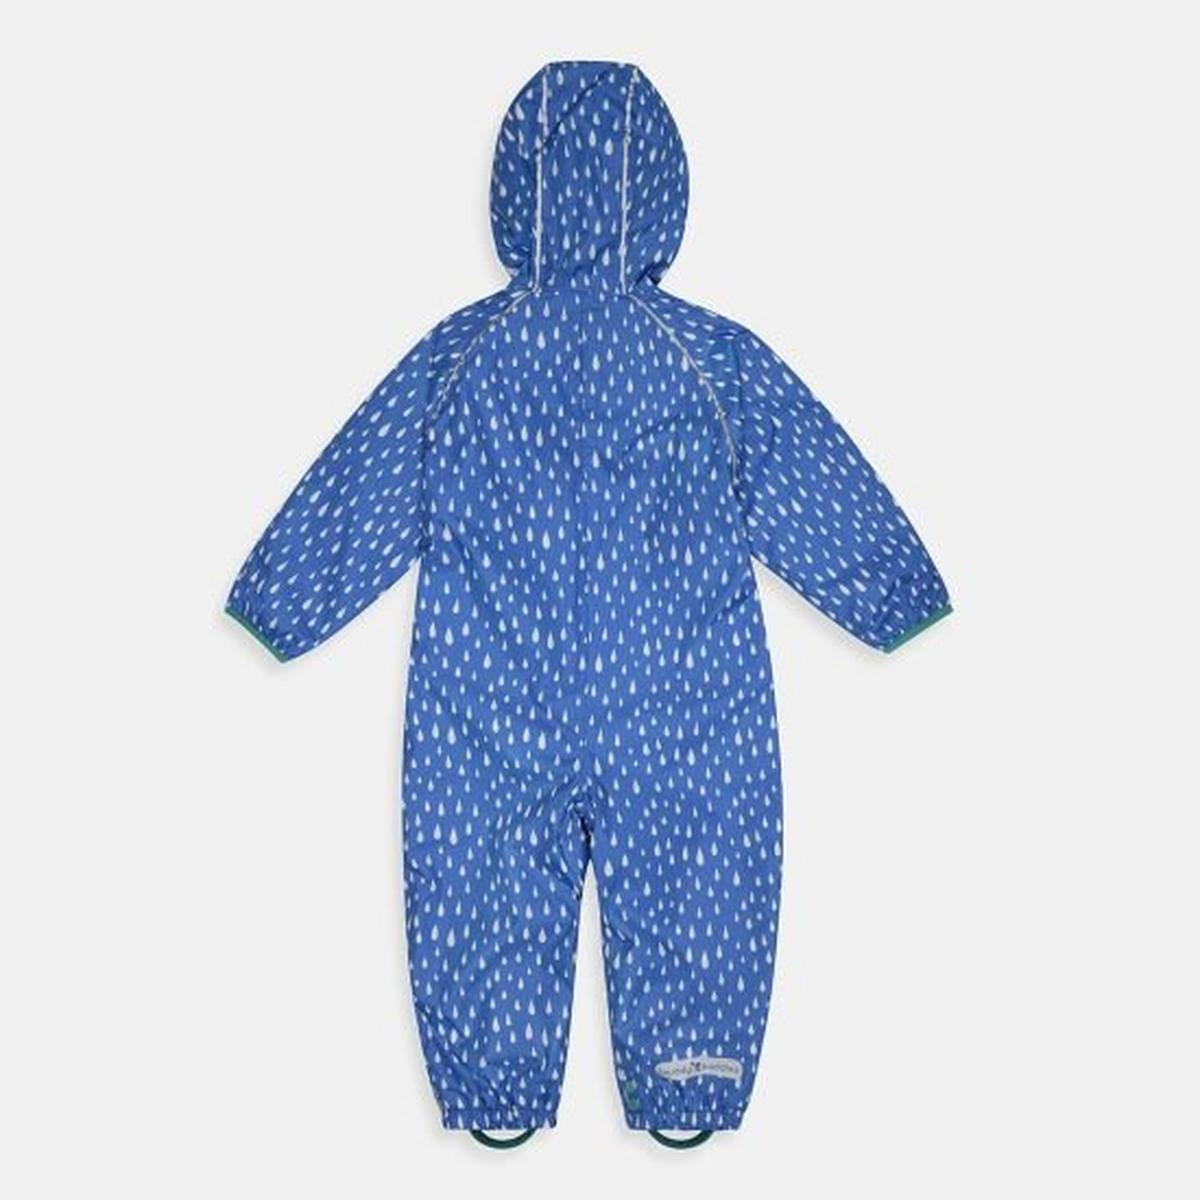 Muddy Puddles Kids' All-In-One Fleece Lined Puddlesuit - Blue